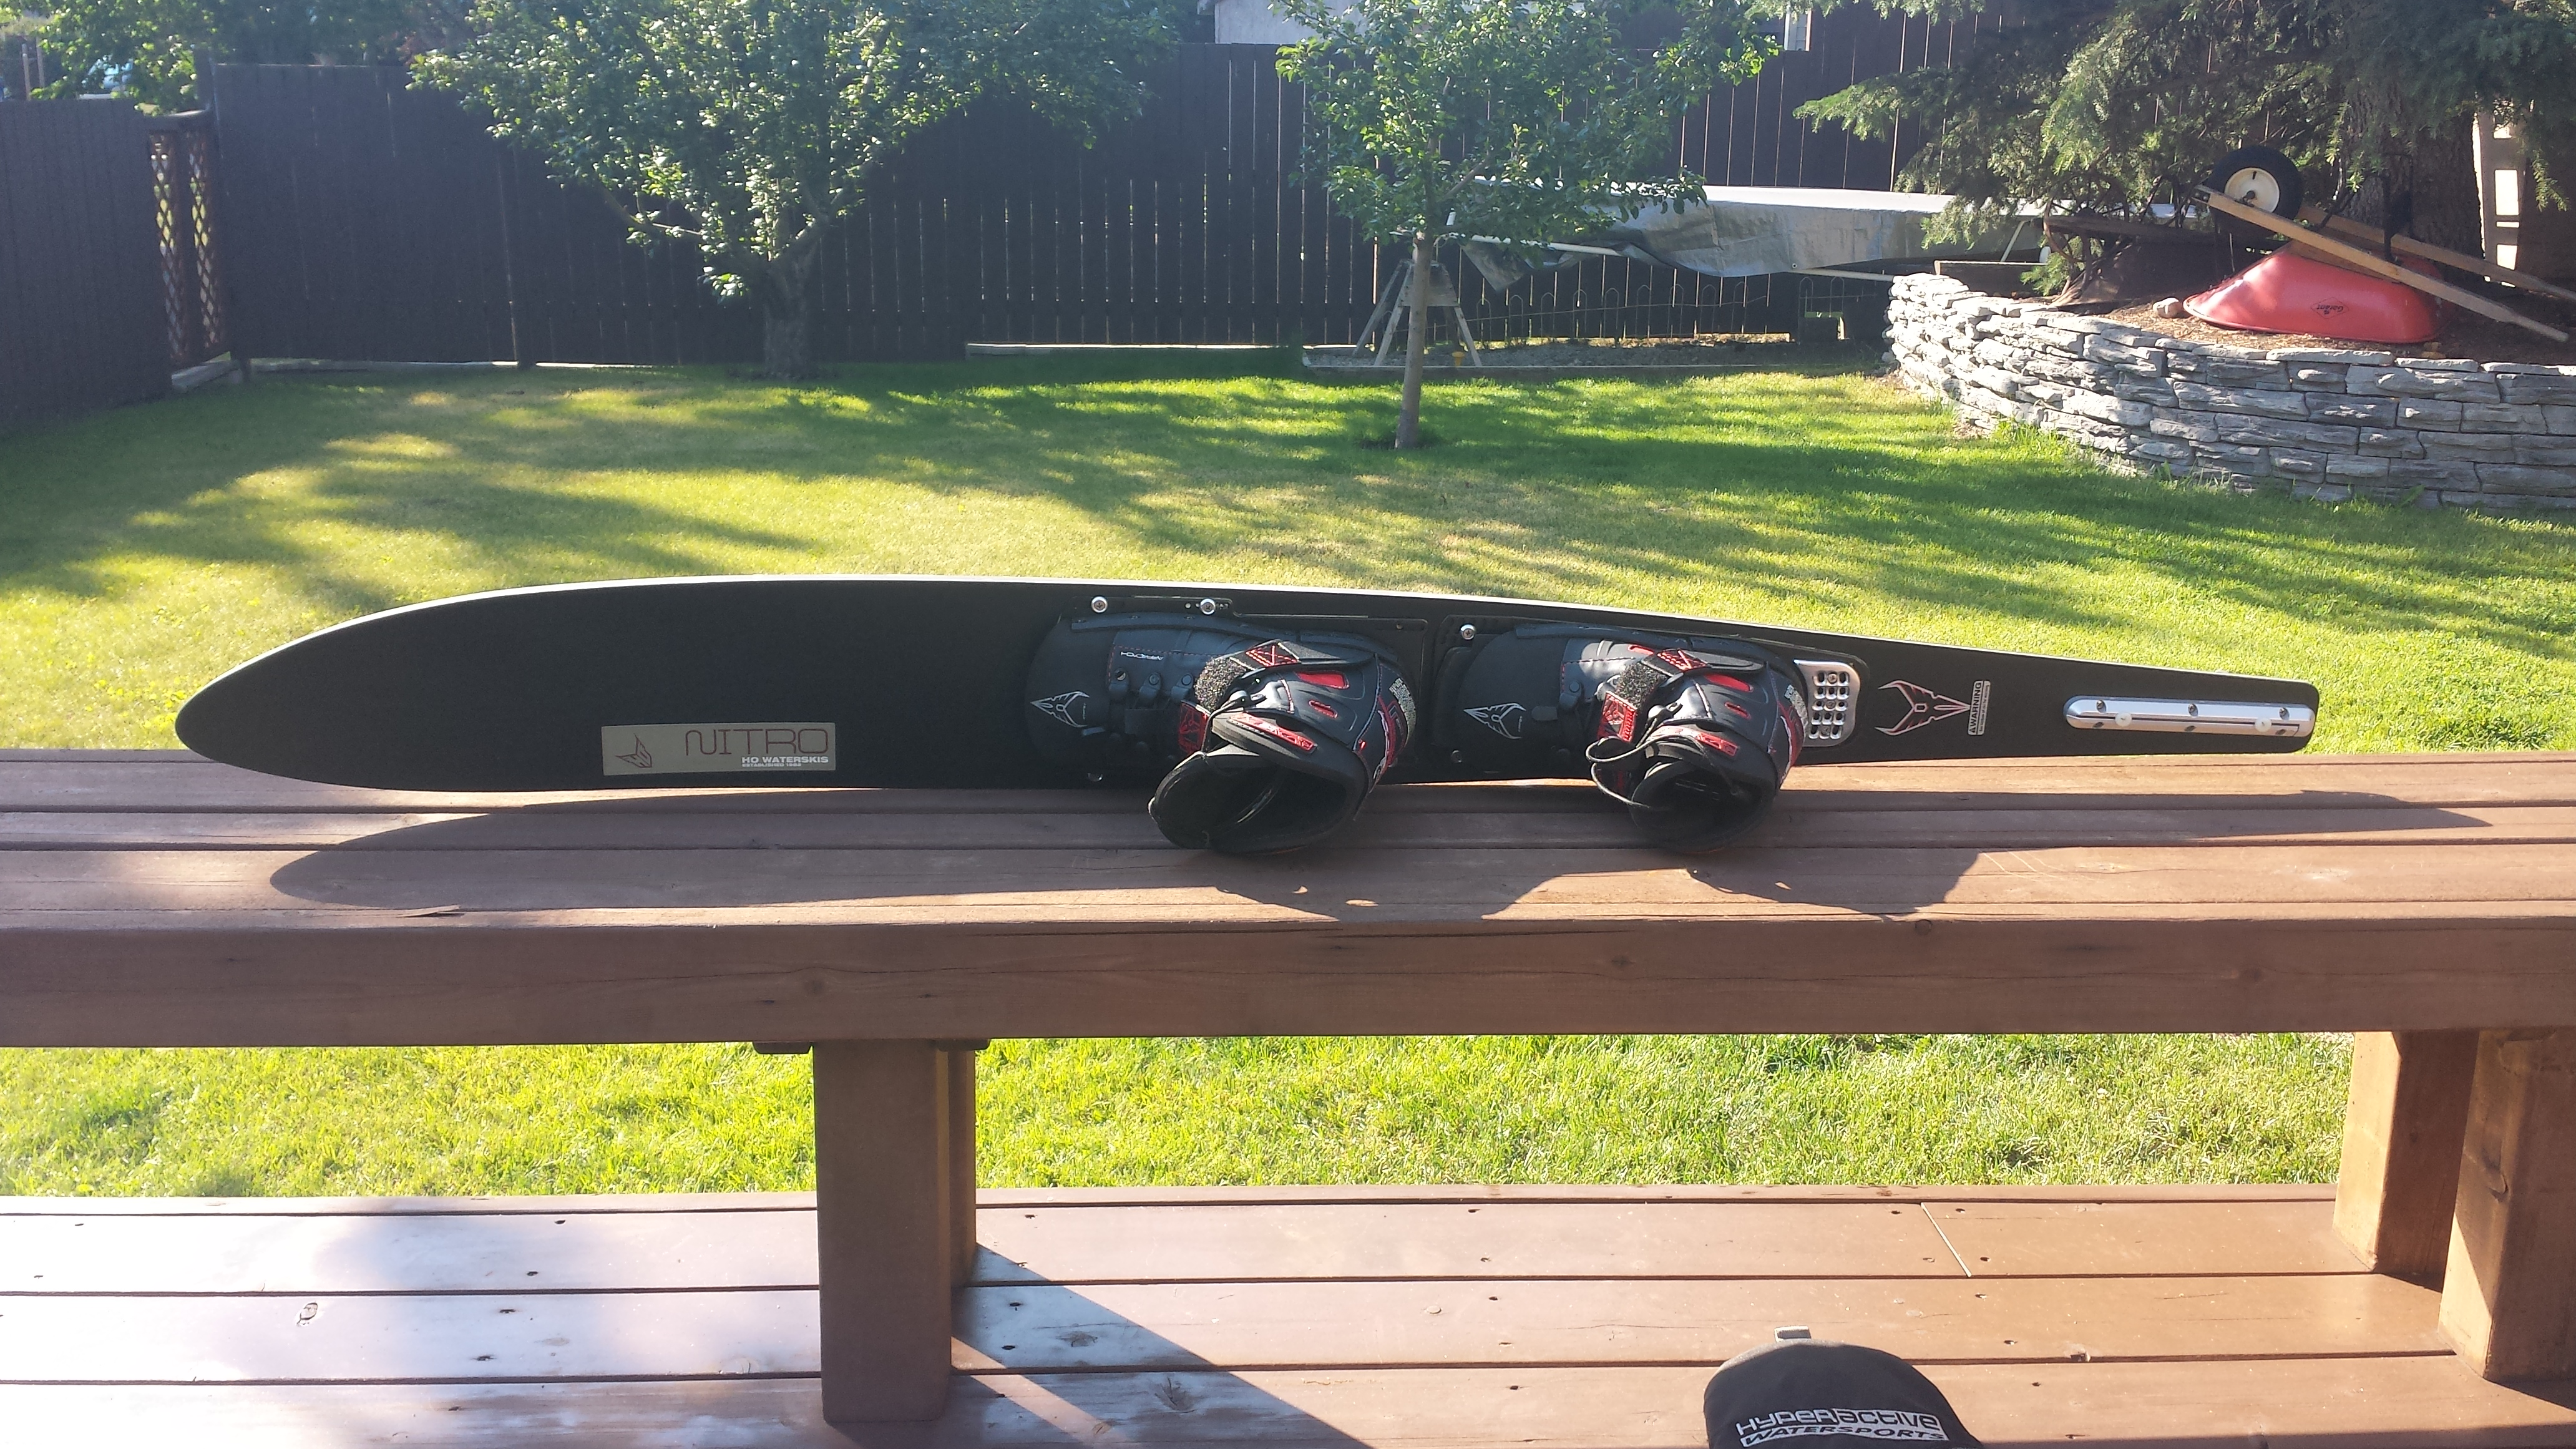 2007 Ho Nitro Waterski W Approach Bindings And Bag